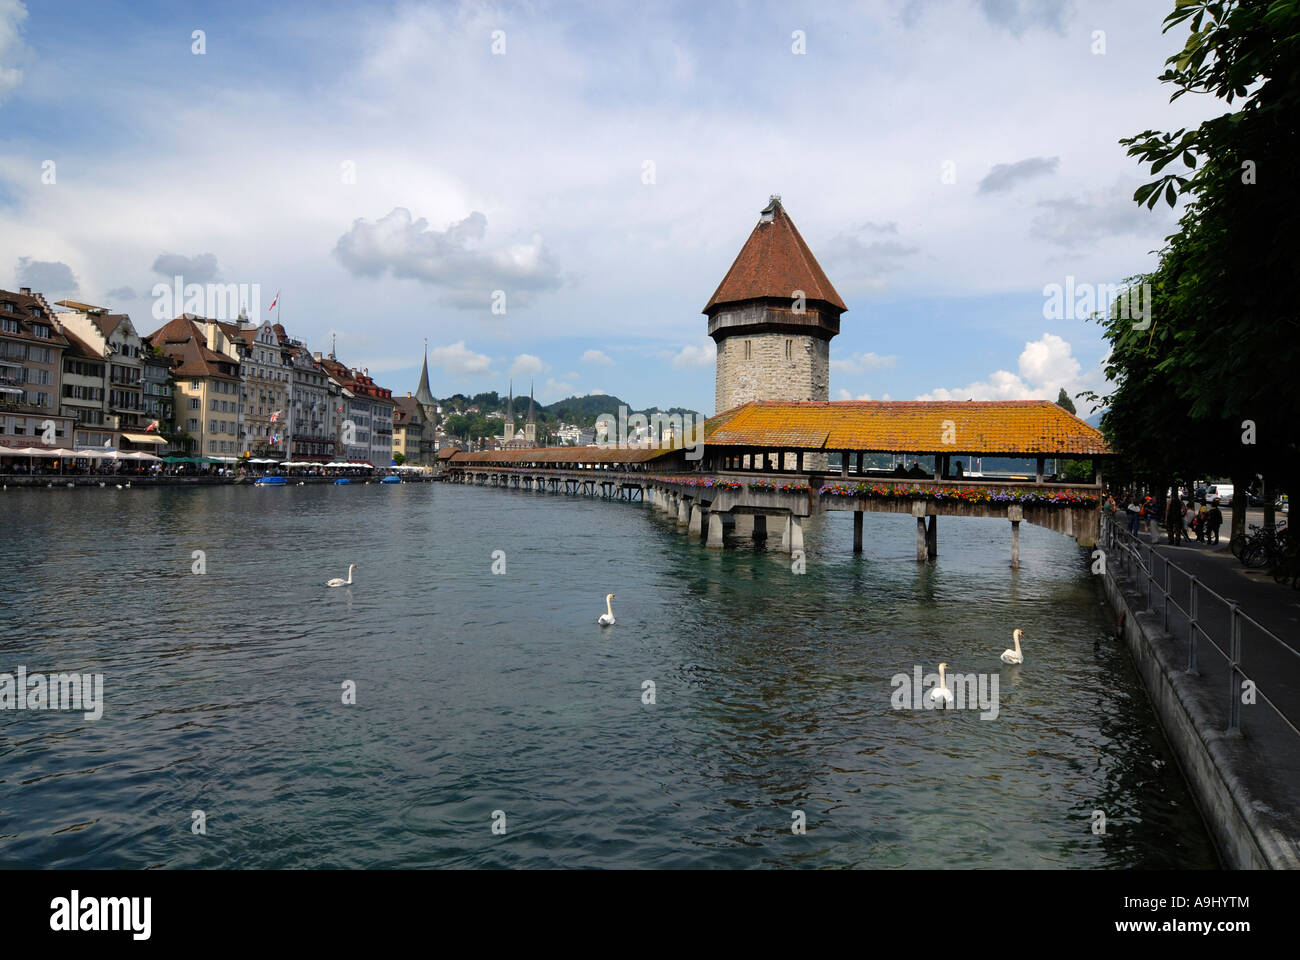 Lucerne - the chappel's Bridge an old part of town - Switzerland, Europe. Stock Photo